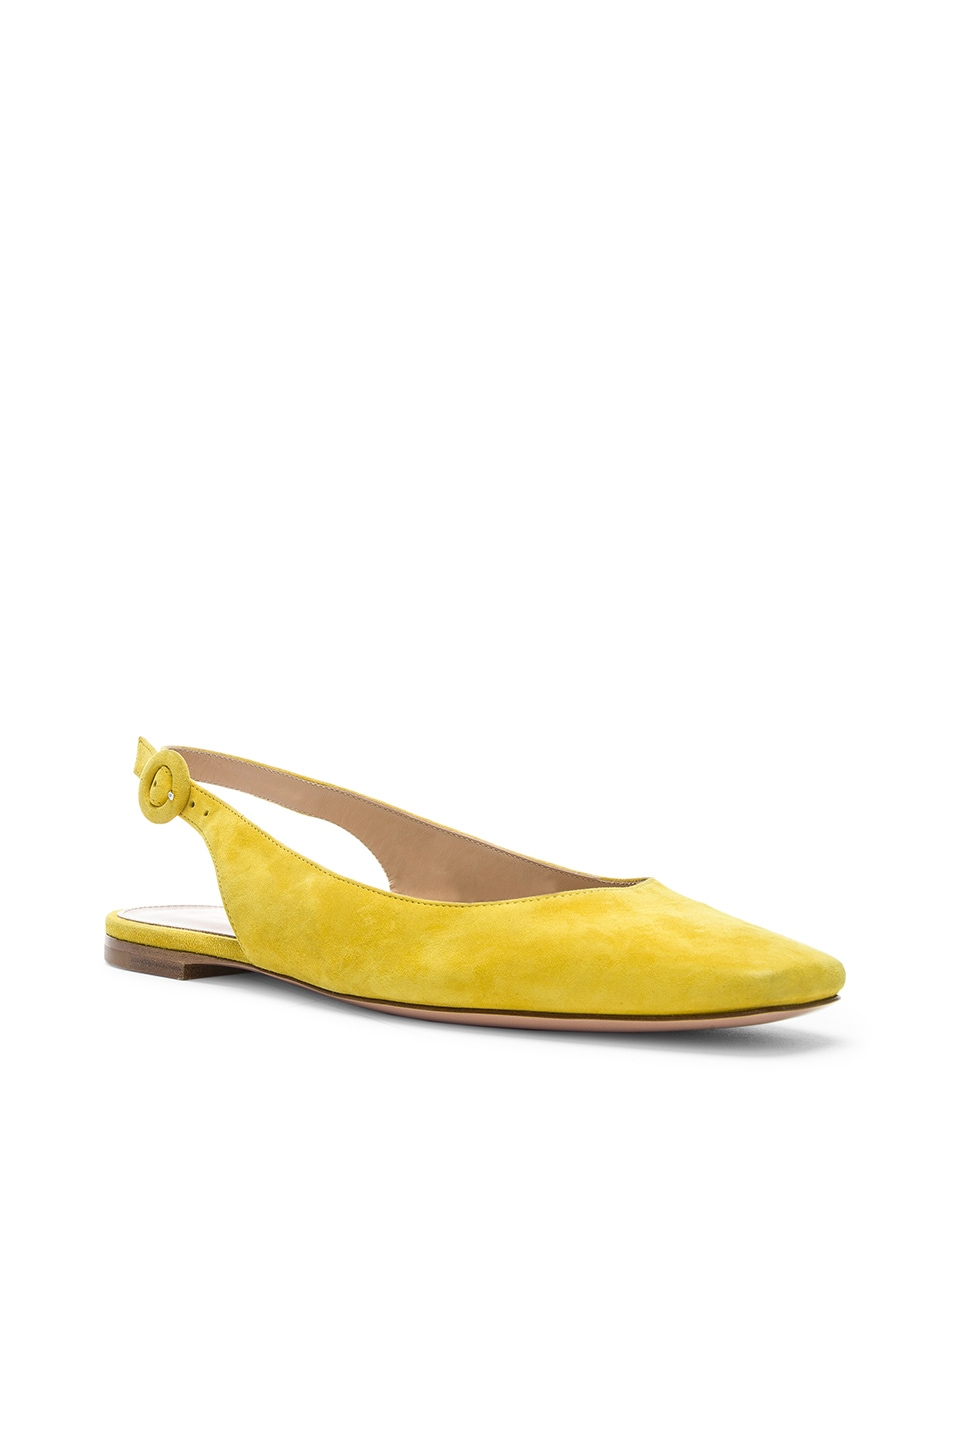 Image 2 of Gianvito Rossi Tish Slingback Flat in Mimosa